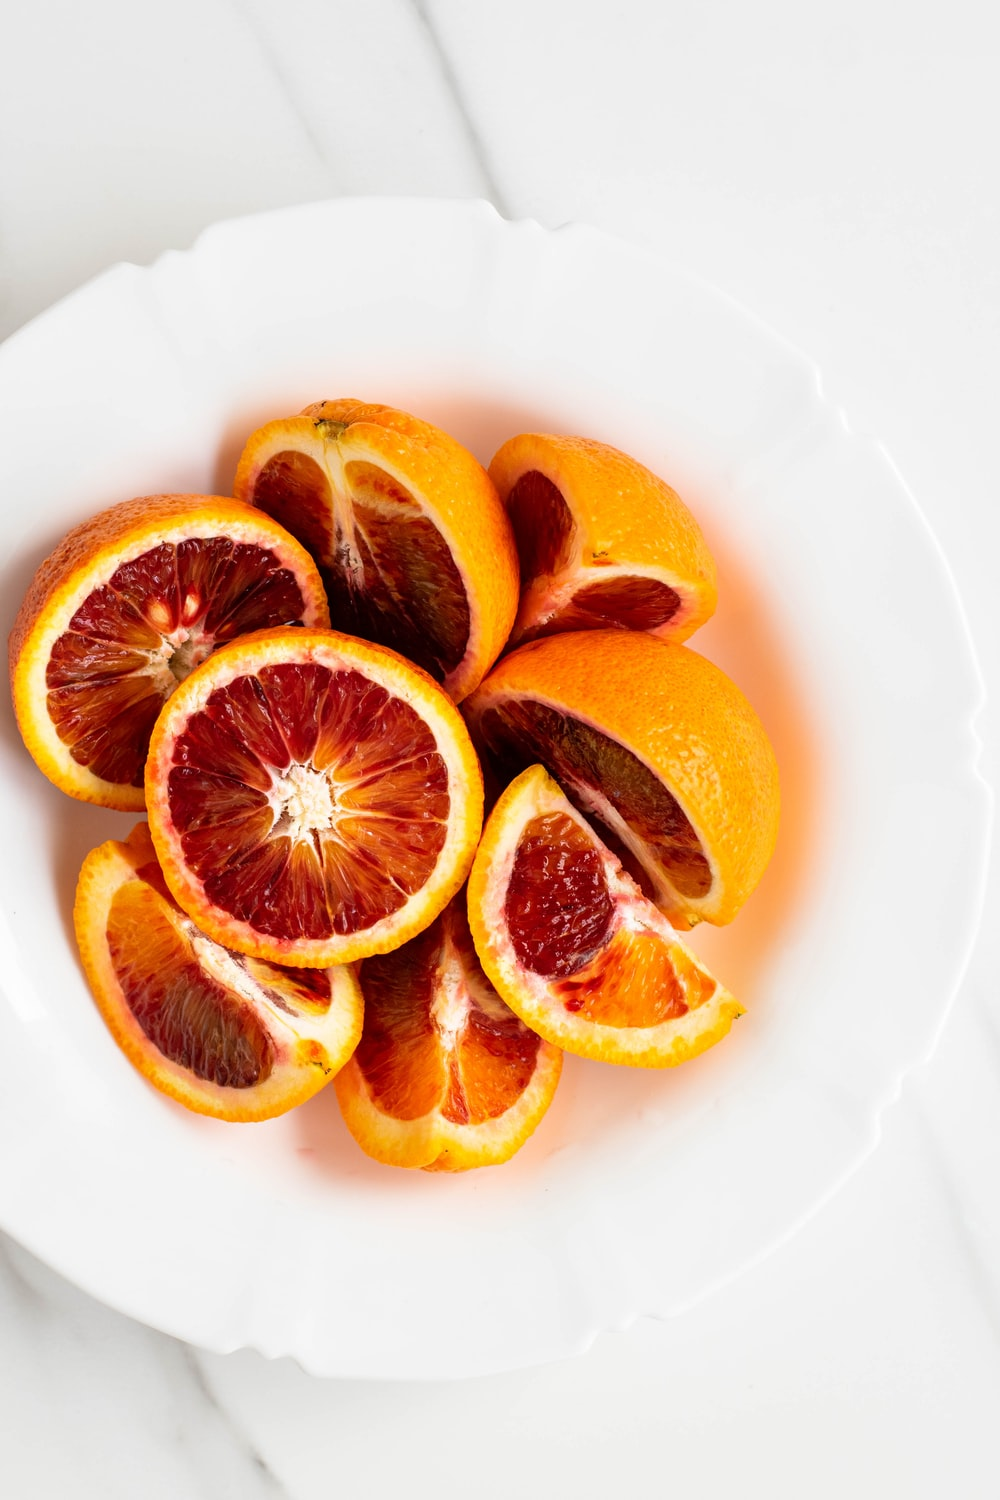 sliced orange fruit on white ceramic plate